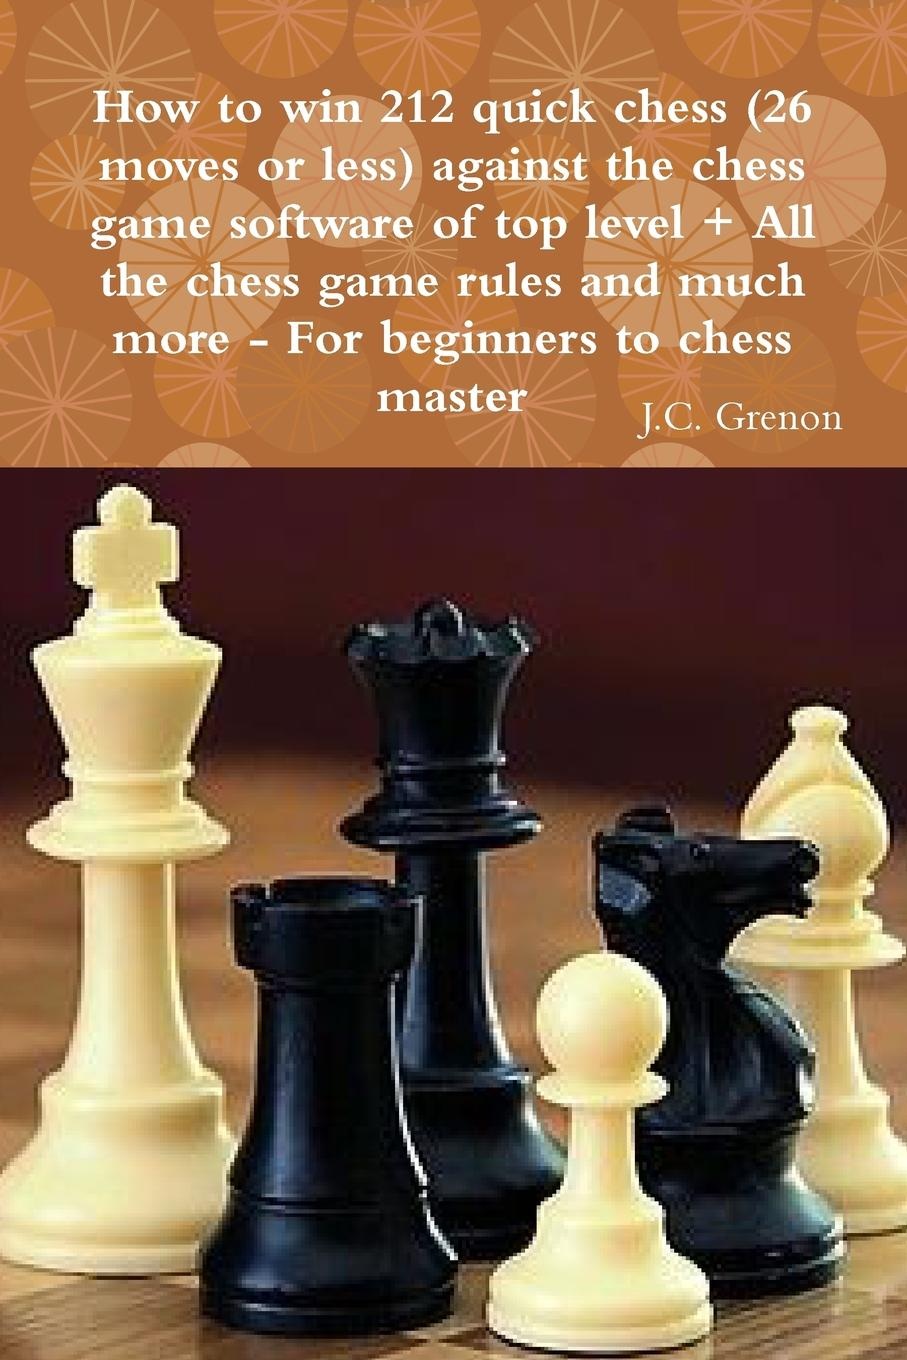 J.C. Grenon How to win 212 quick chess (26 moves or less) against the high chess software . All the chess rules and much more